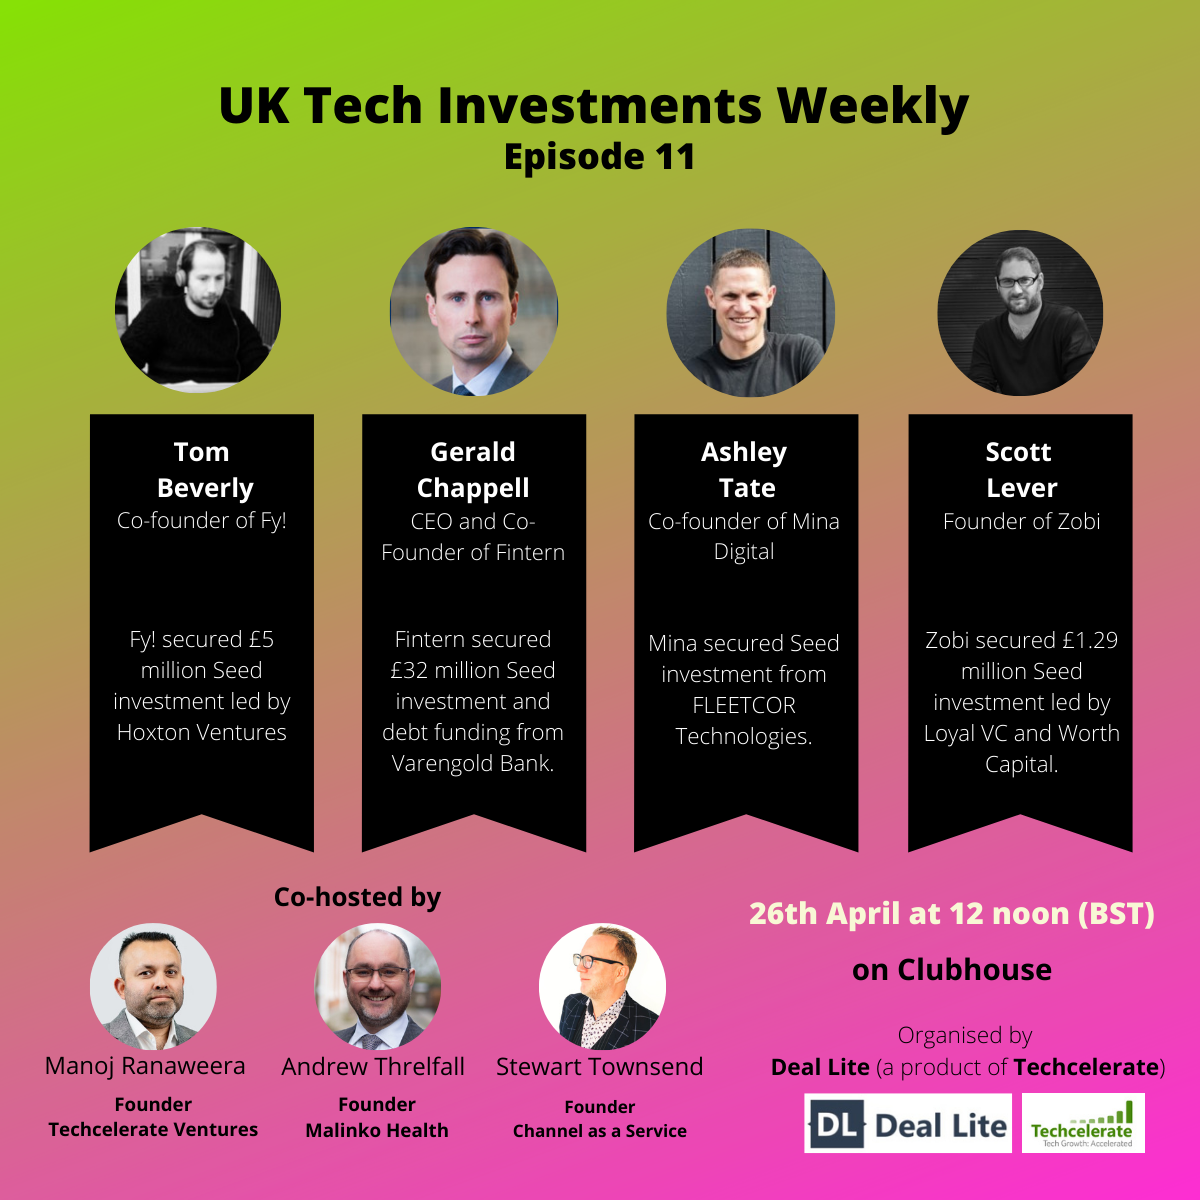 UK Tech Investment Weekly Episode 11